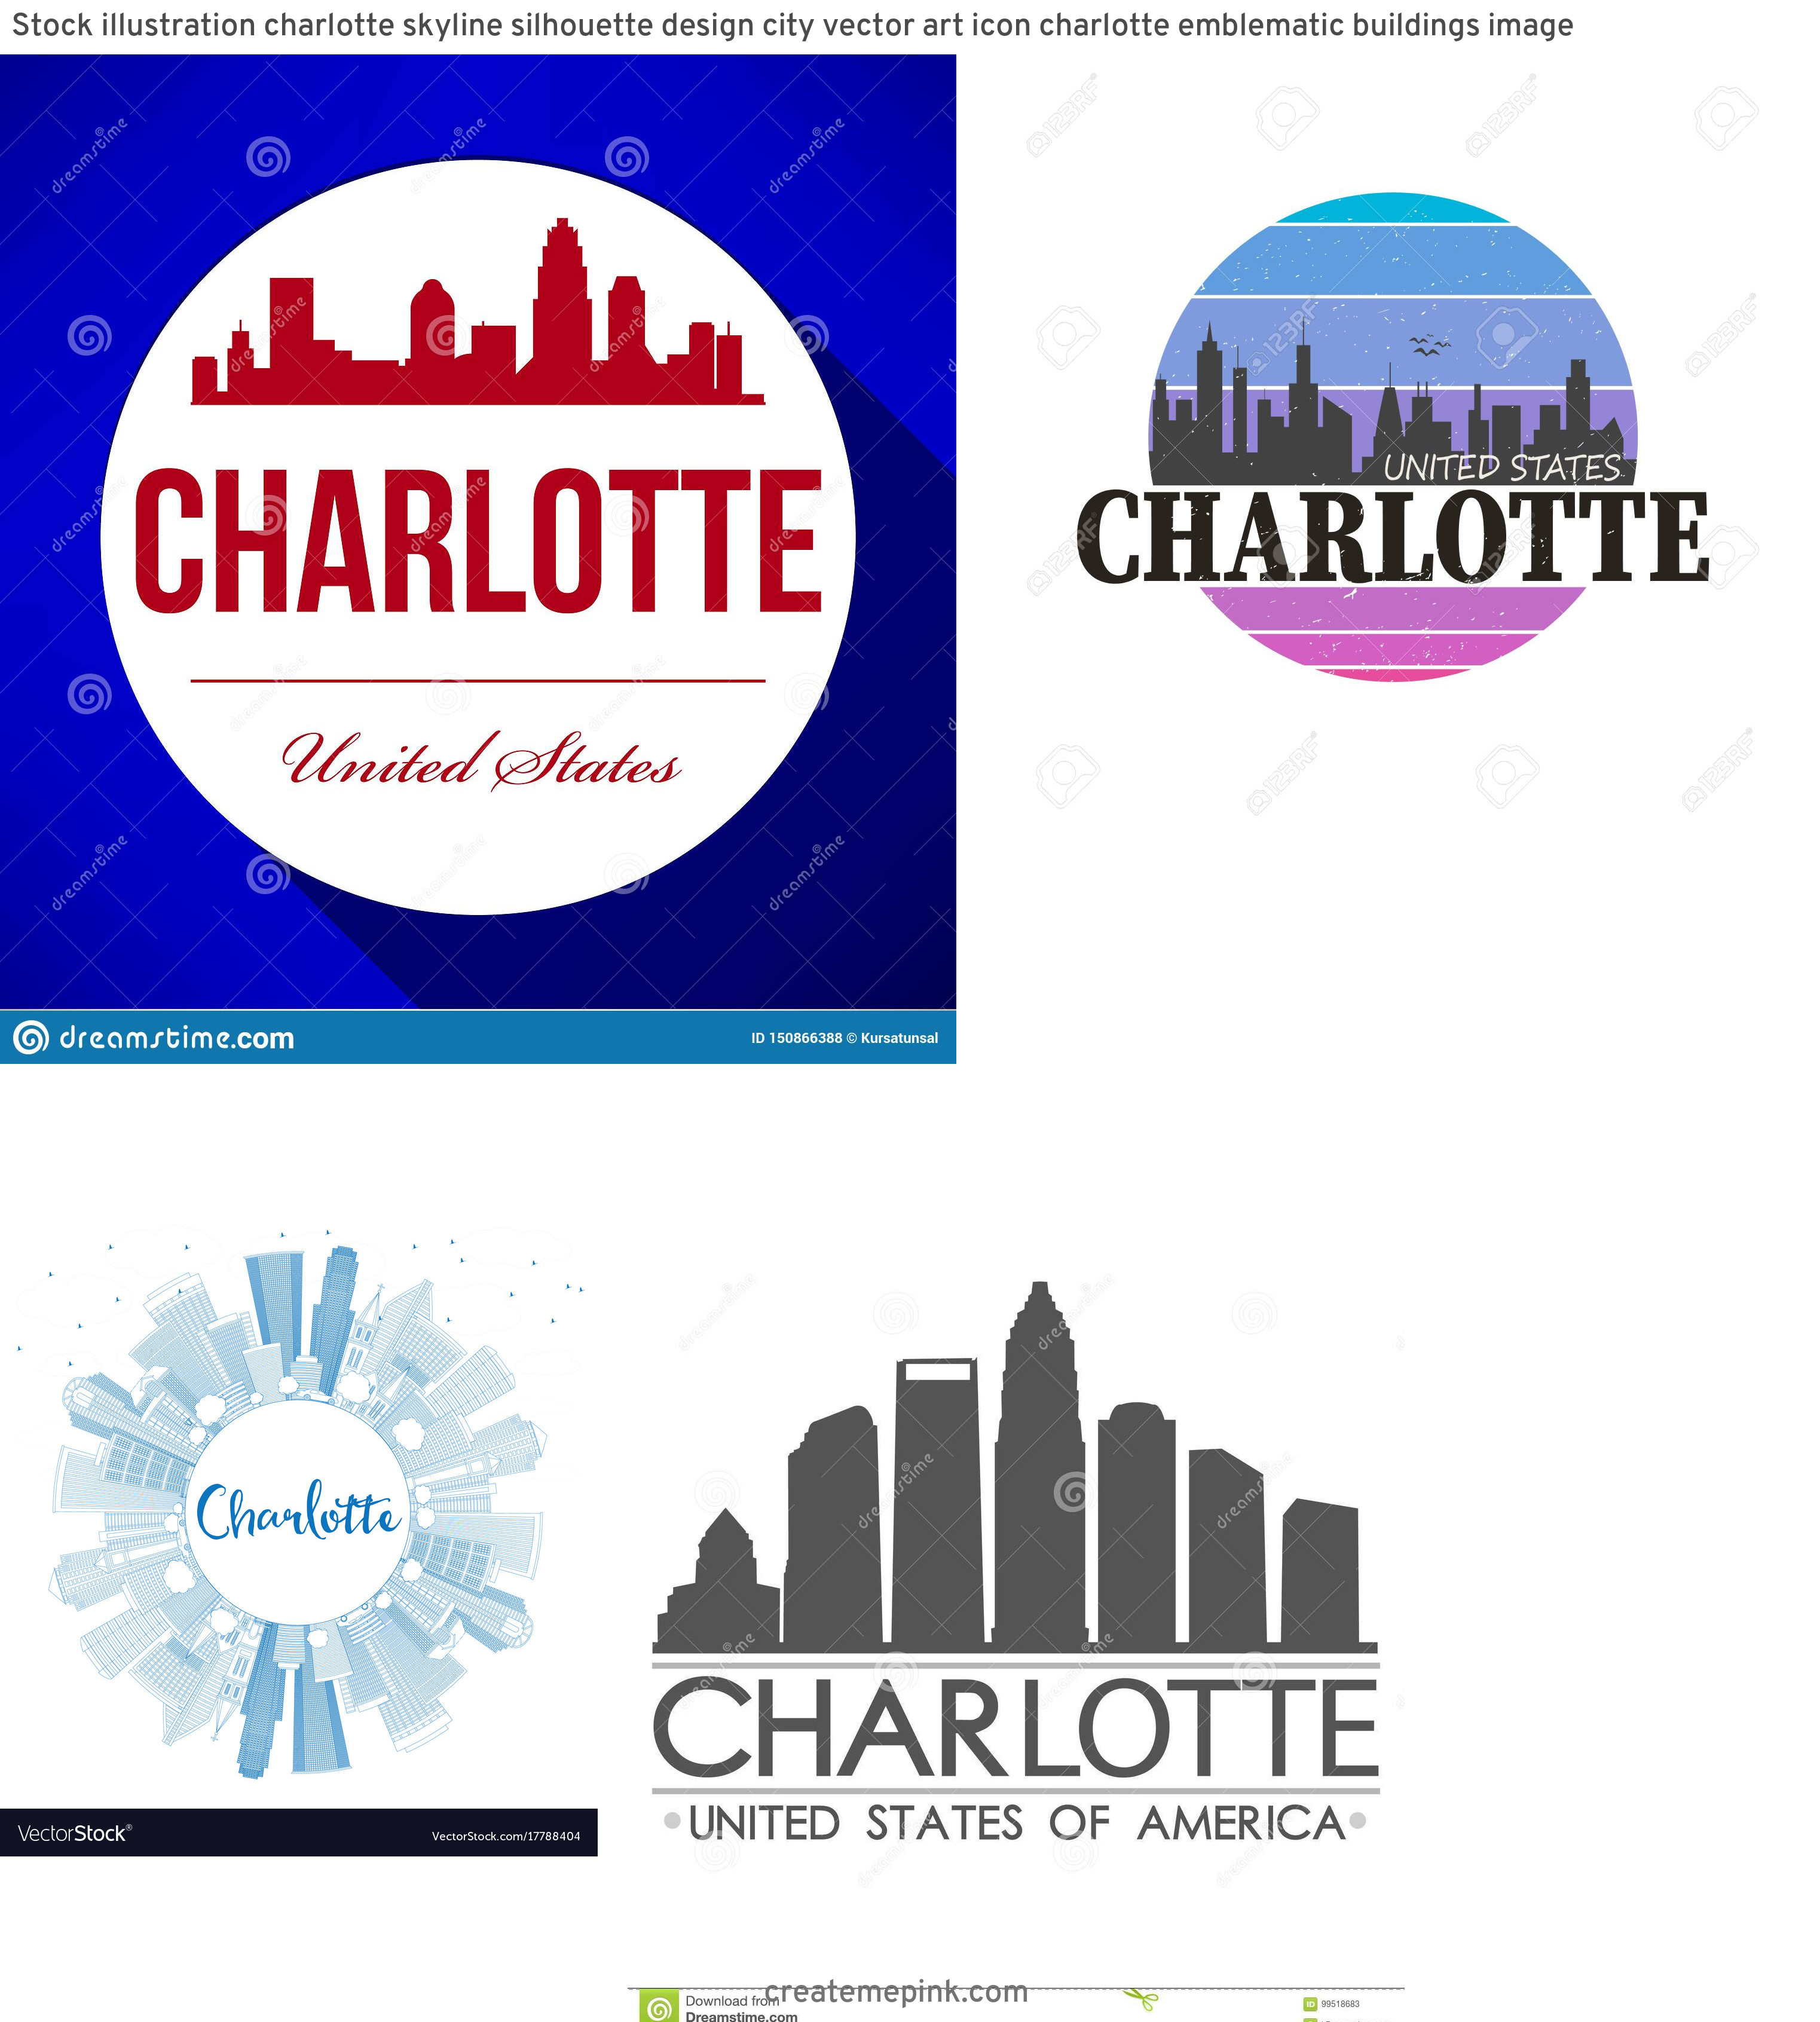 Charlotte Skyline Vector Circle: Stock Illustration Charlotte Skyline Silhouette Design City Vector Art Icon Charlotte Emblematic Buildings Image